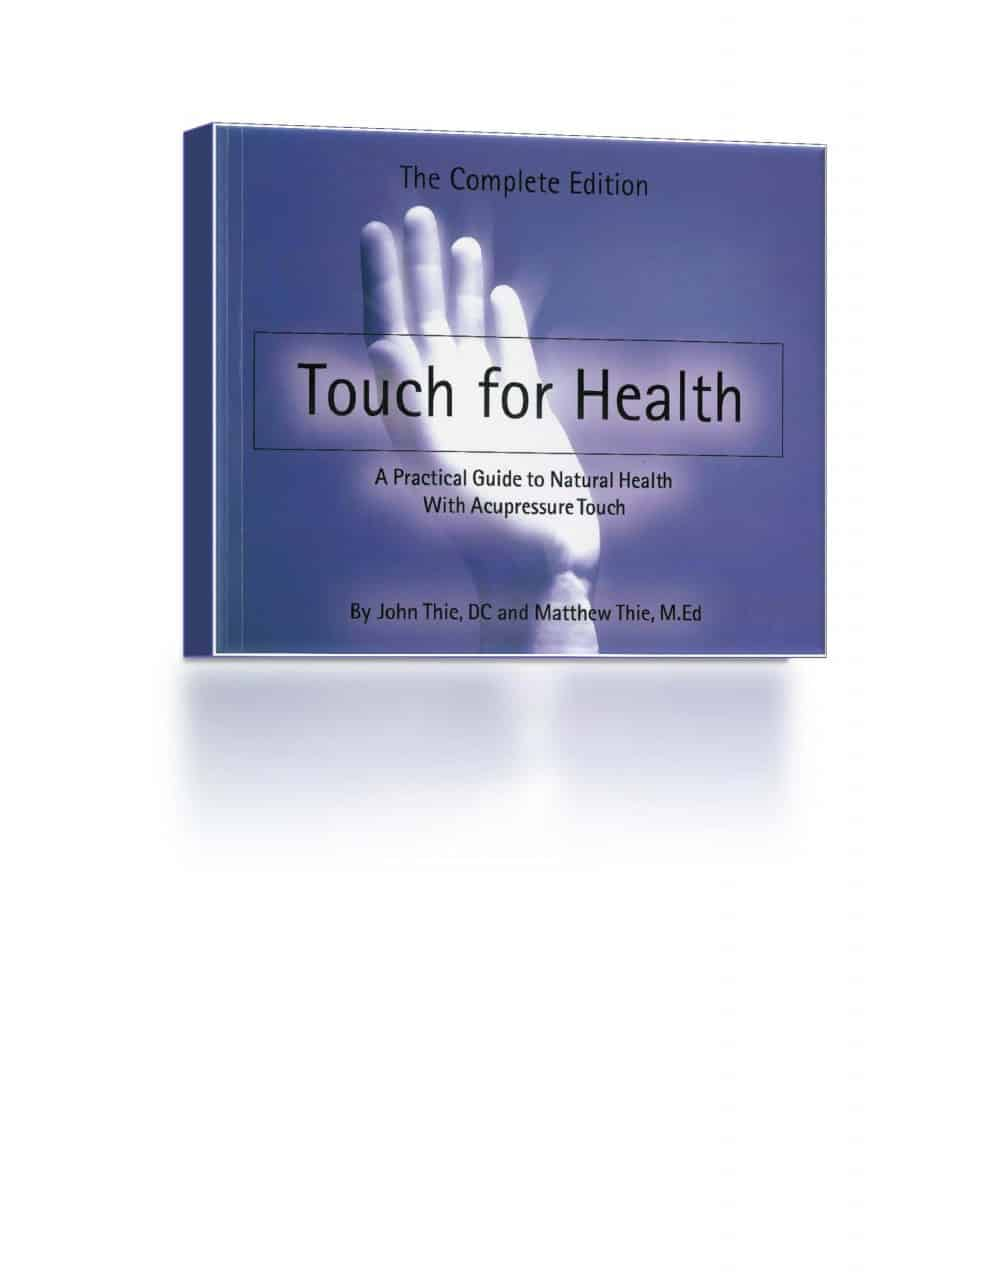 Touch for Health (Book)